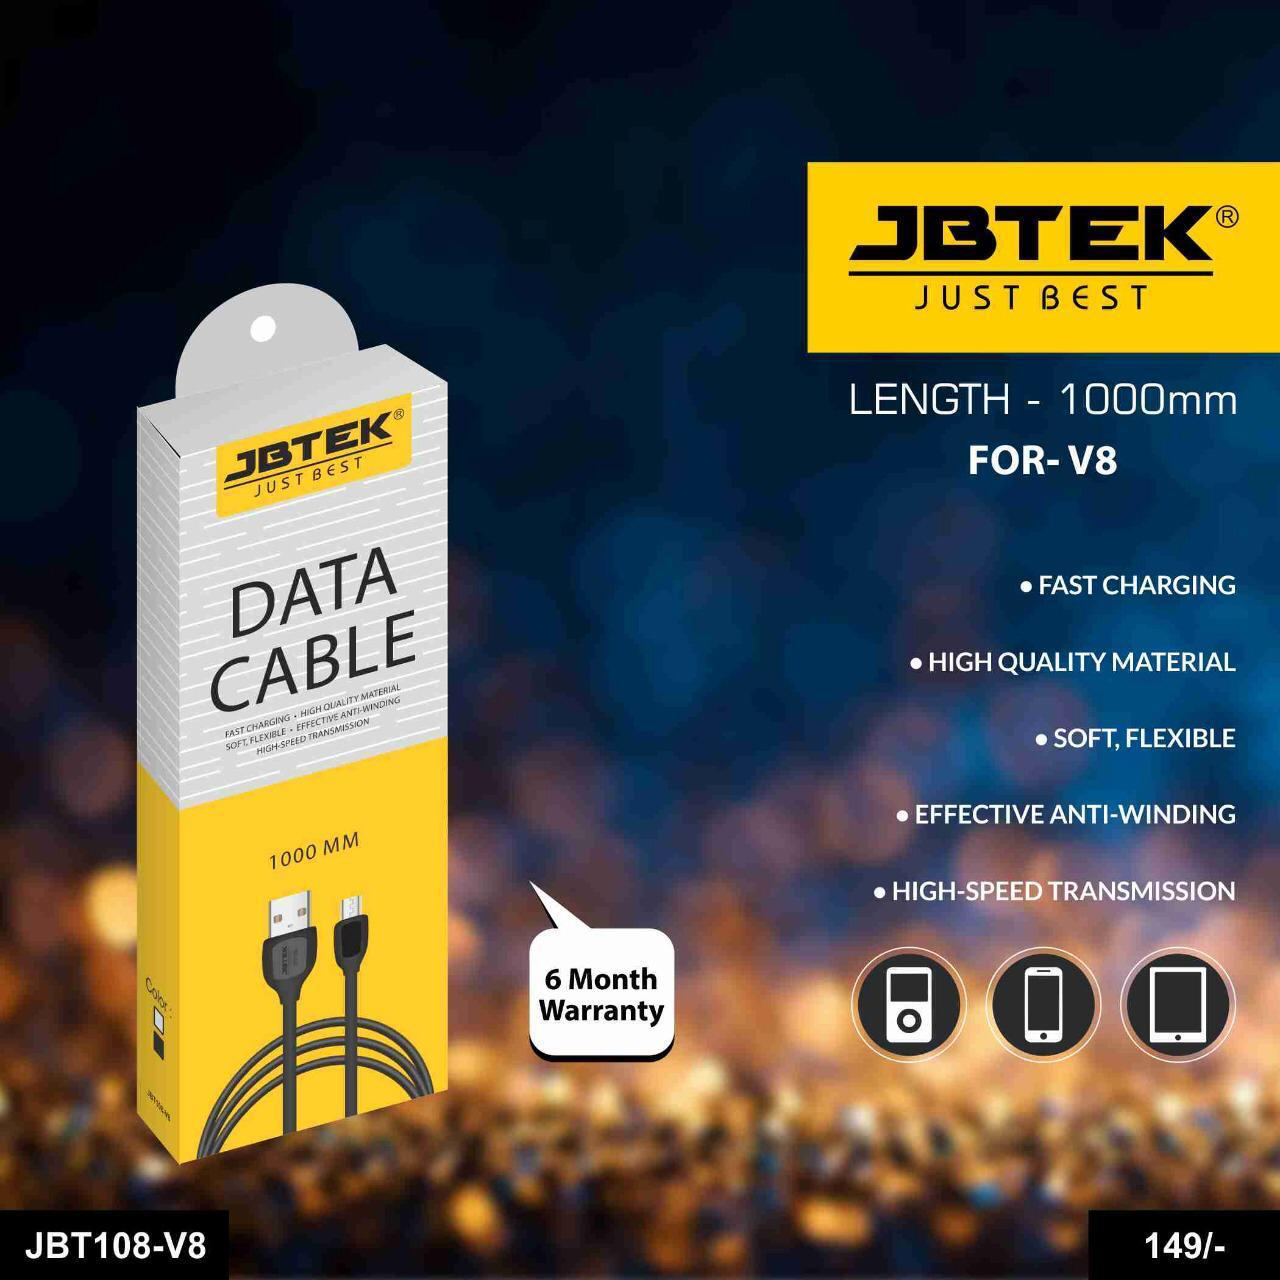 jbtek data cable with warranty JBT108 V8